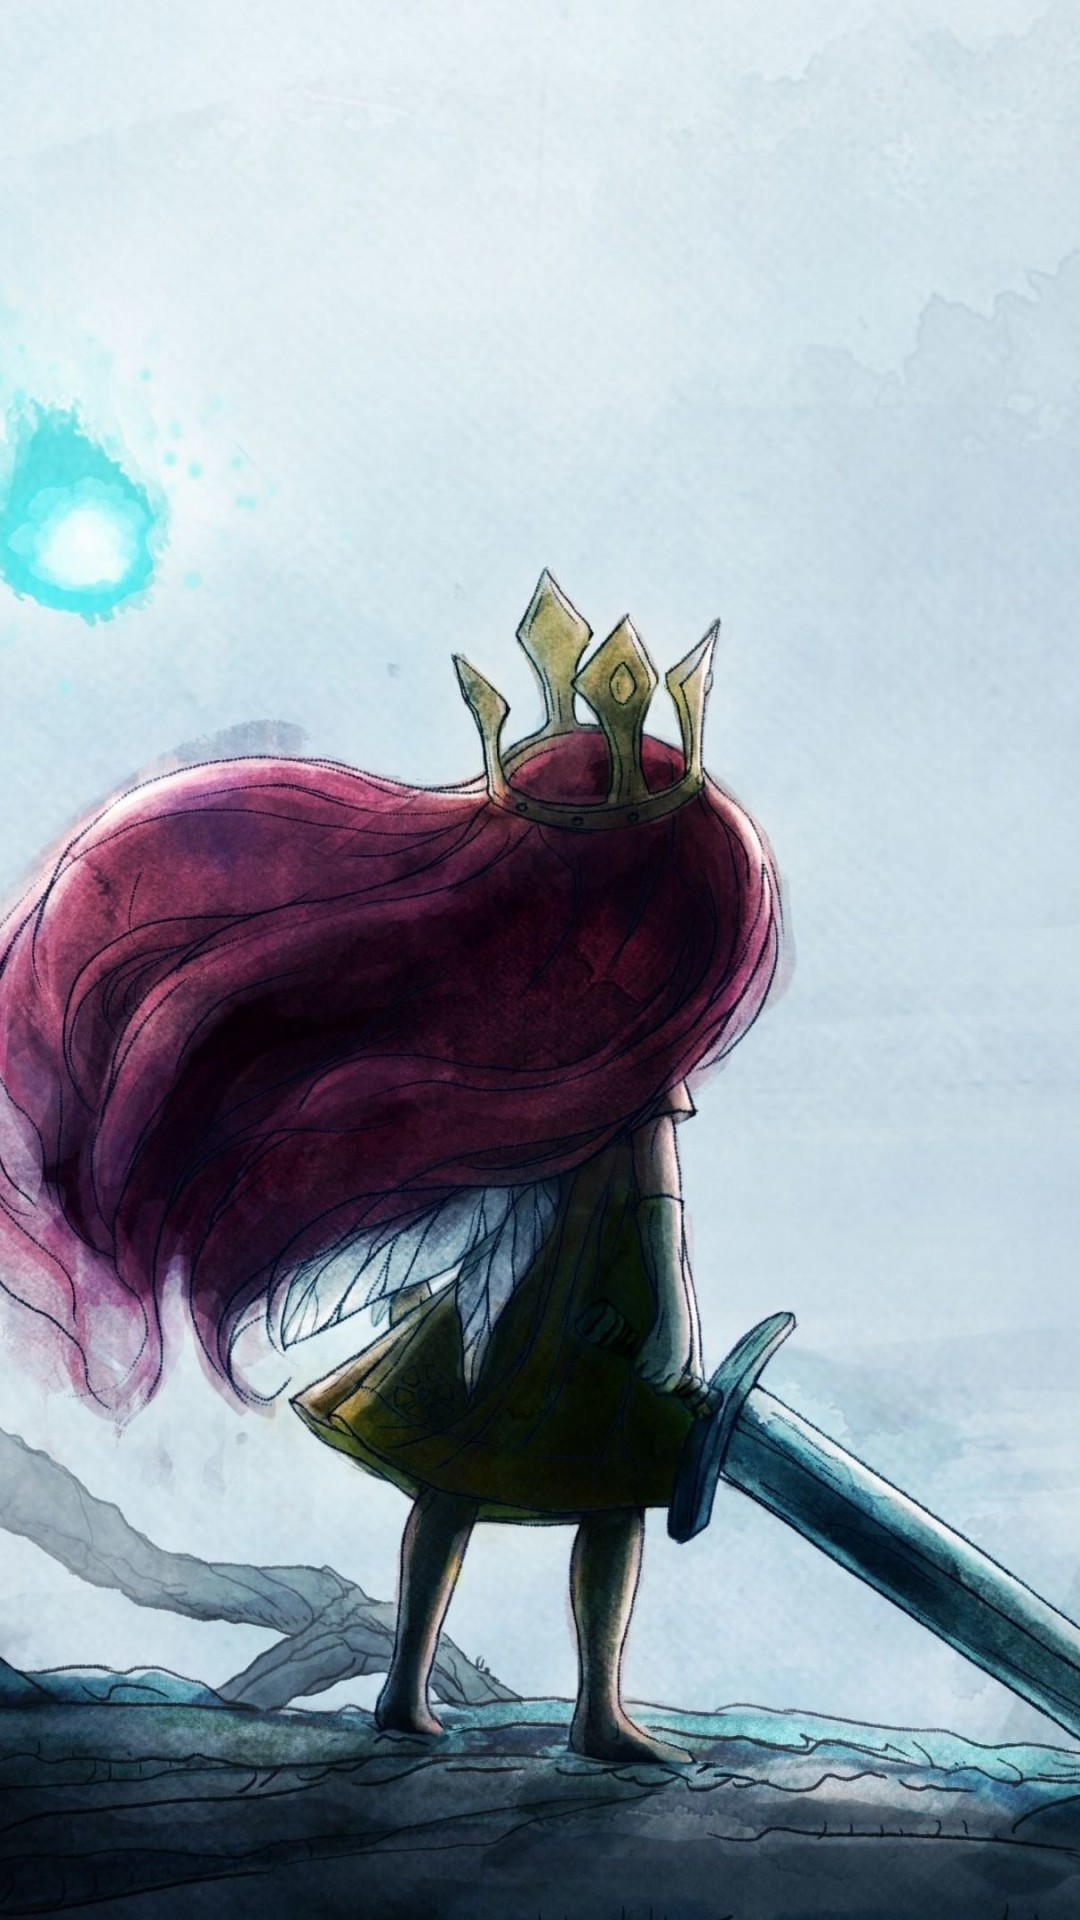 Child Of Light Wallpaper for SAMSUNG Galaxy Note 3